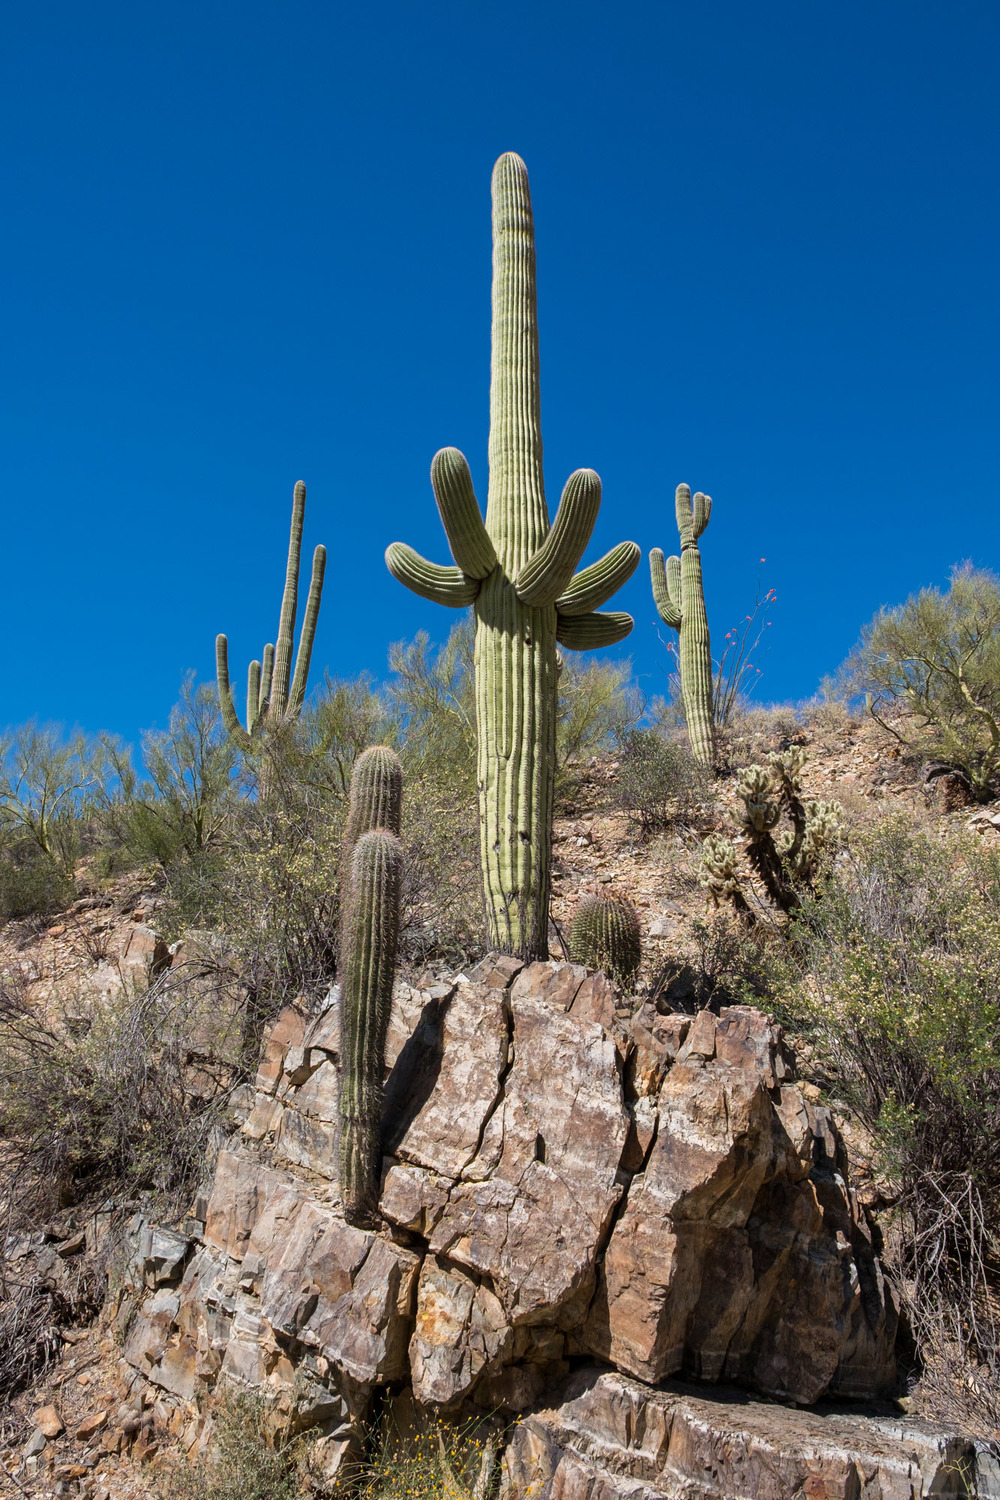 These cacti can grow from just about any precipice.